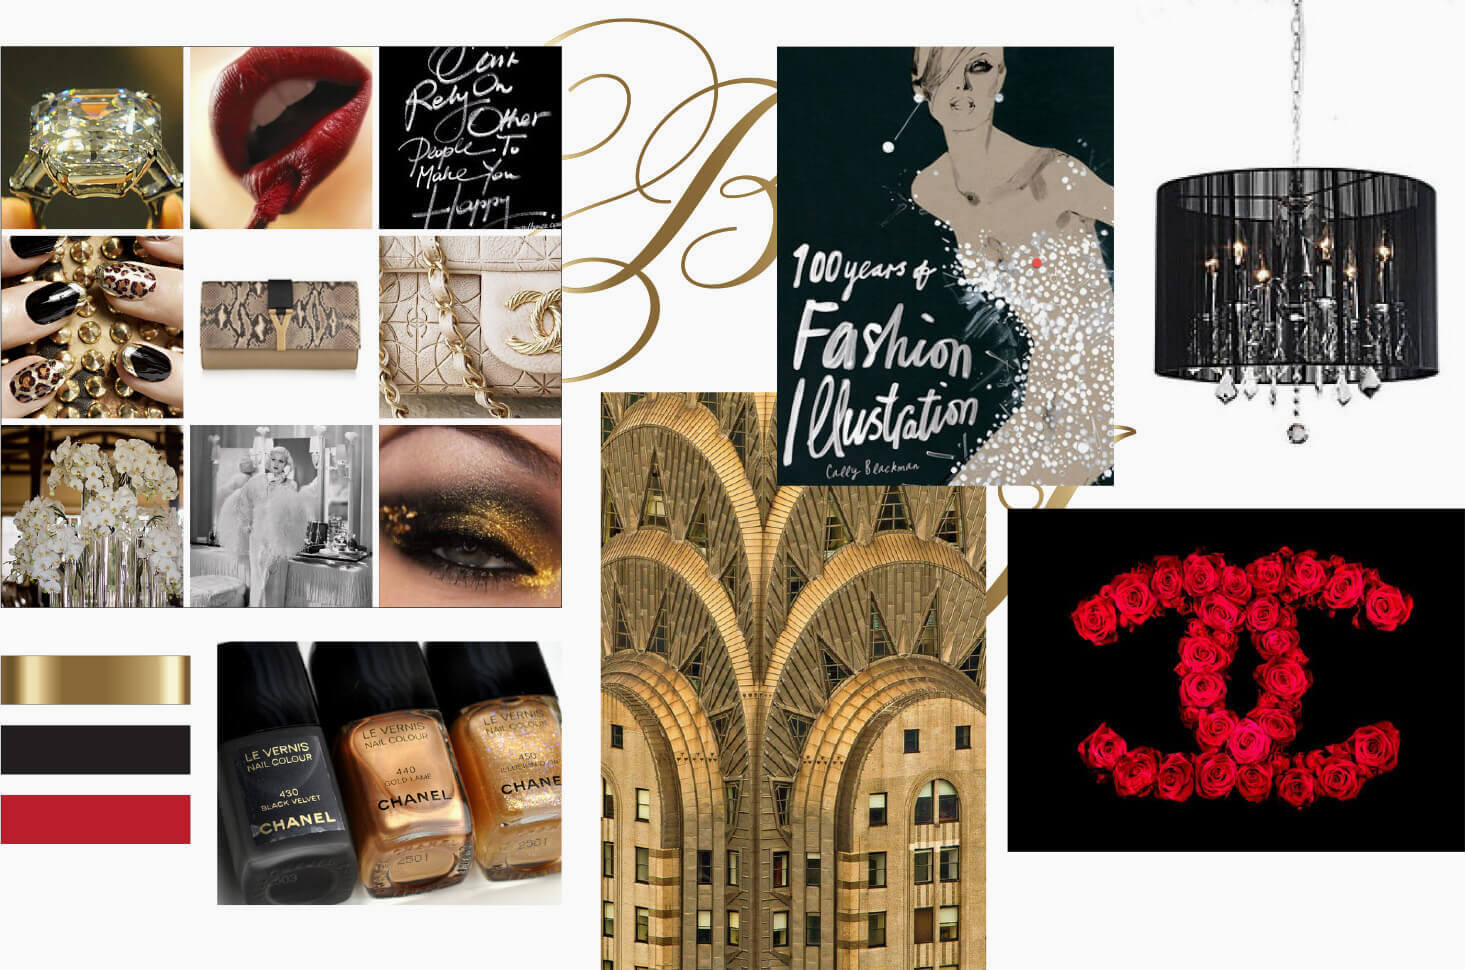 Fashion, design and Chanel inspired moodboard